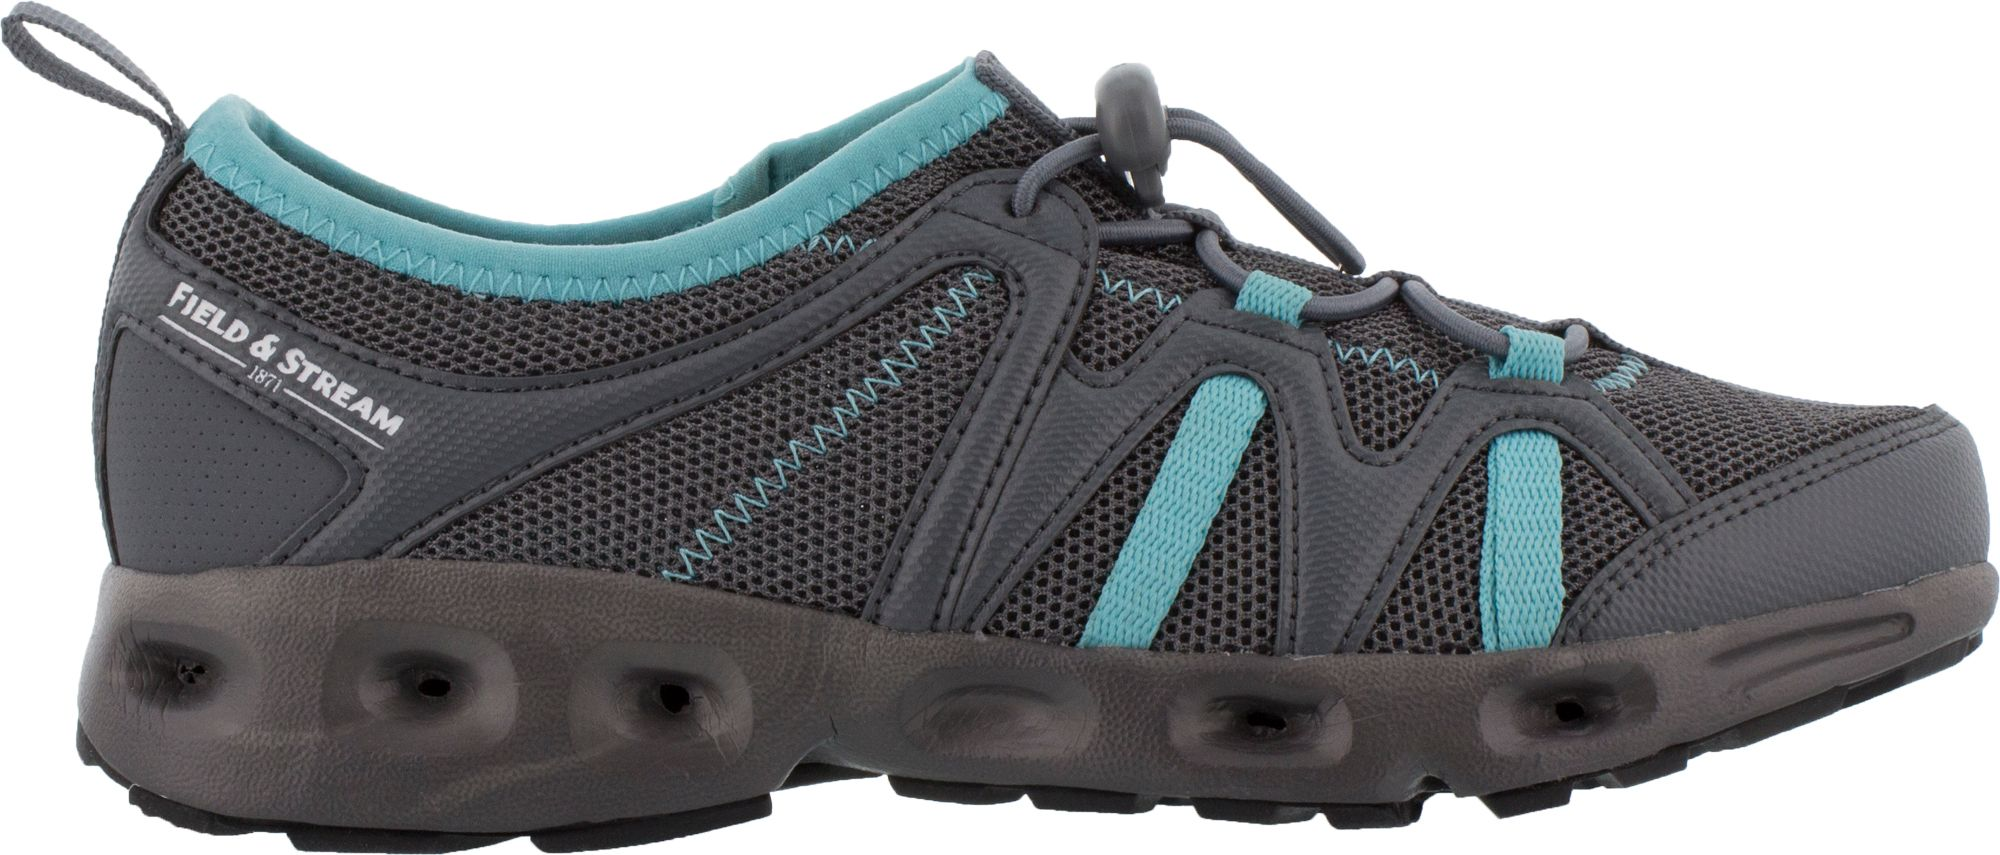 Women's Performance Water Shoes